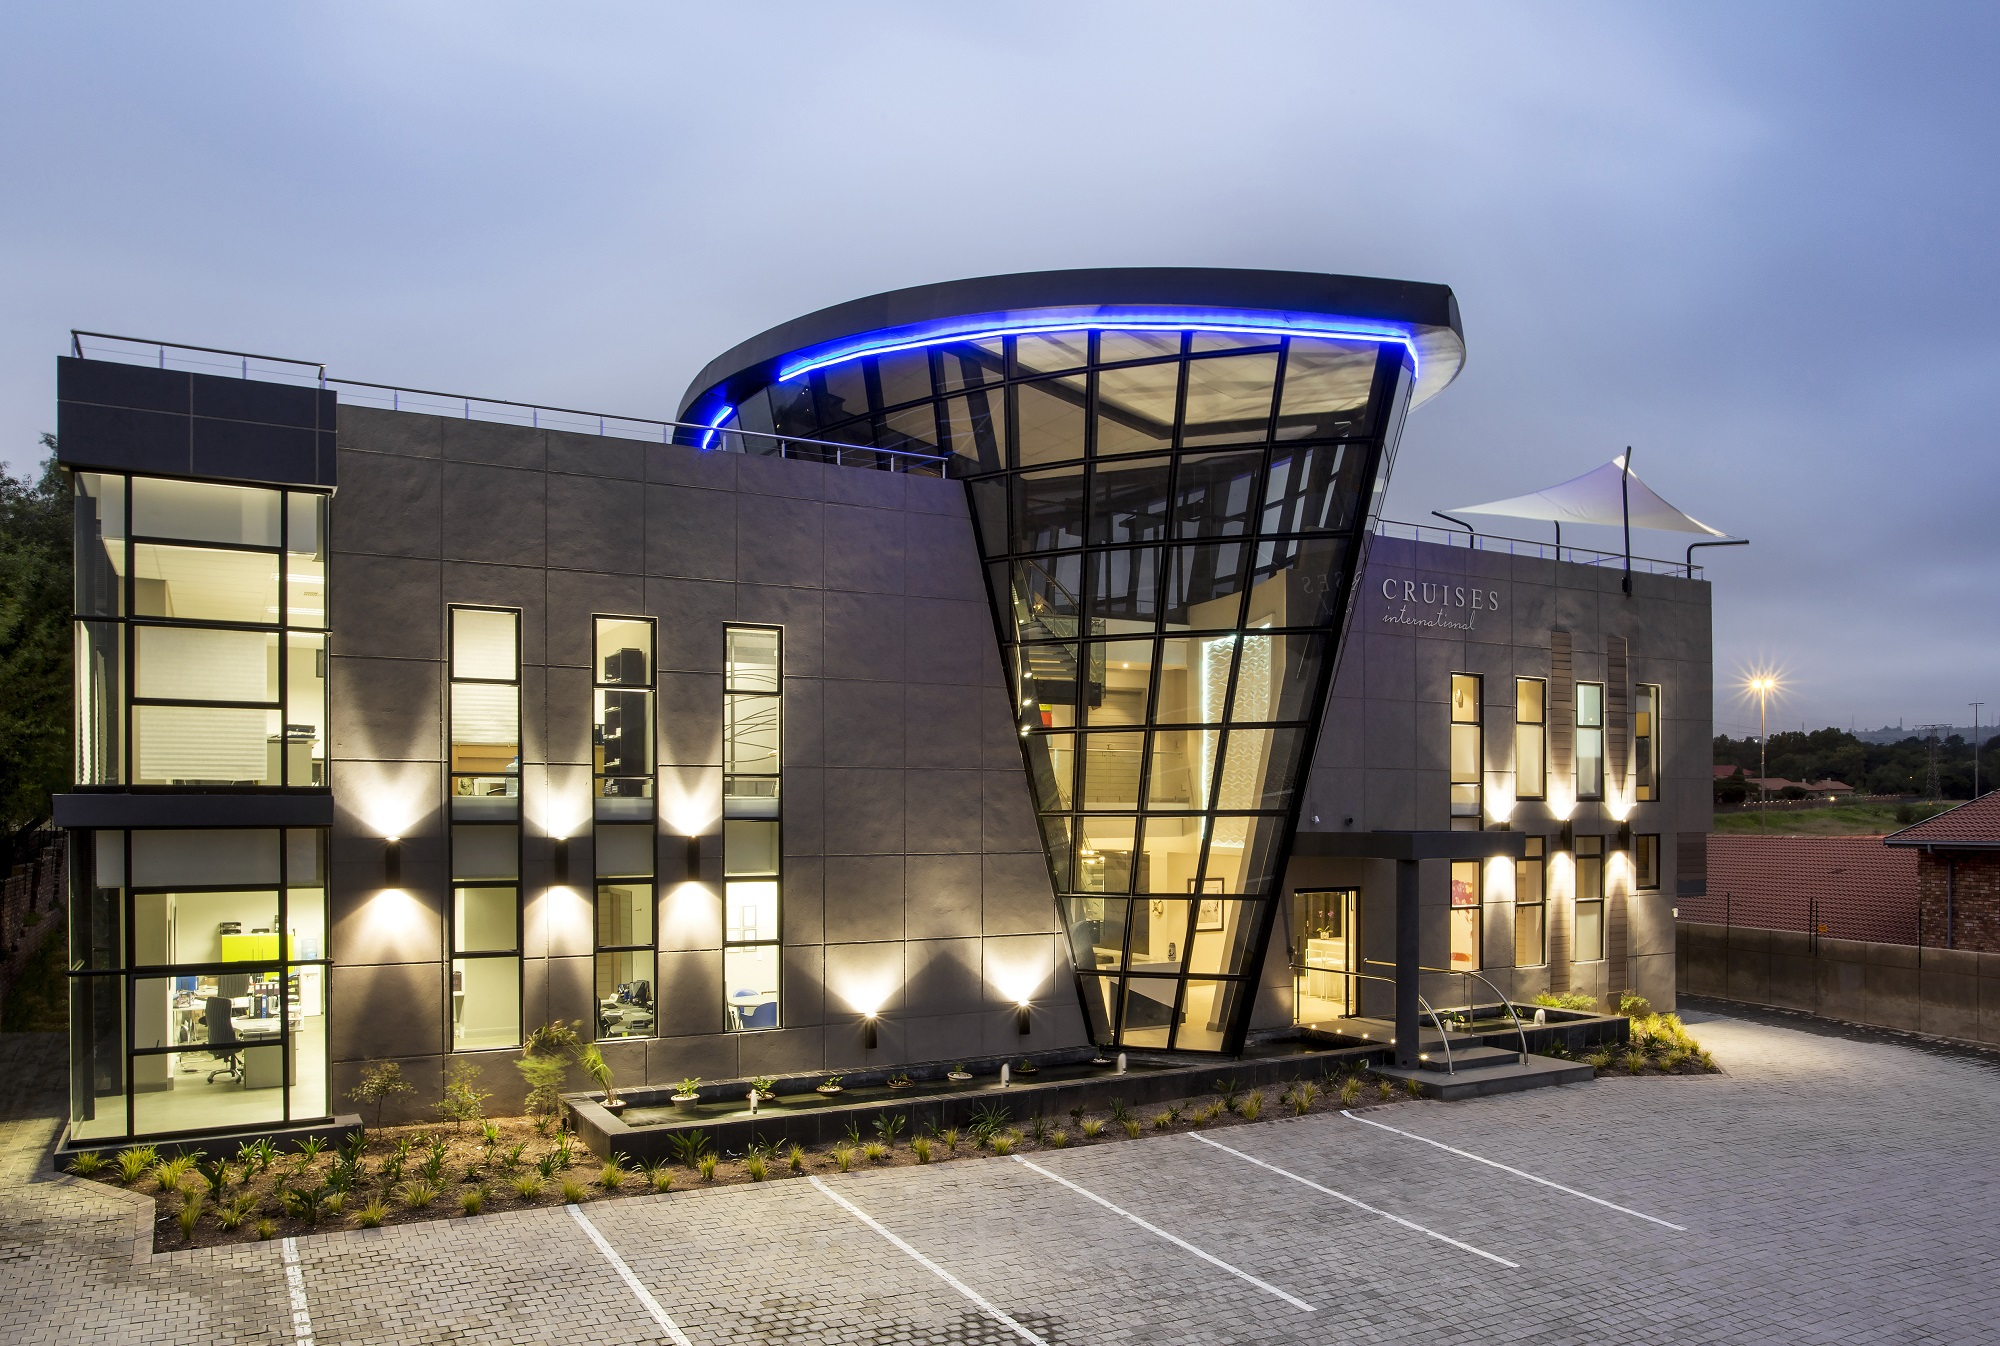 CRUISES INTERNATIONAL. Commercial Architecture